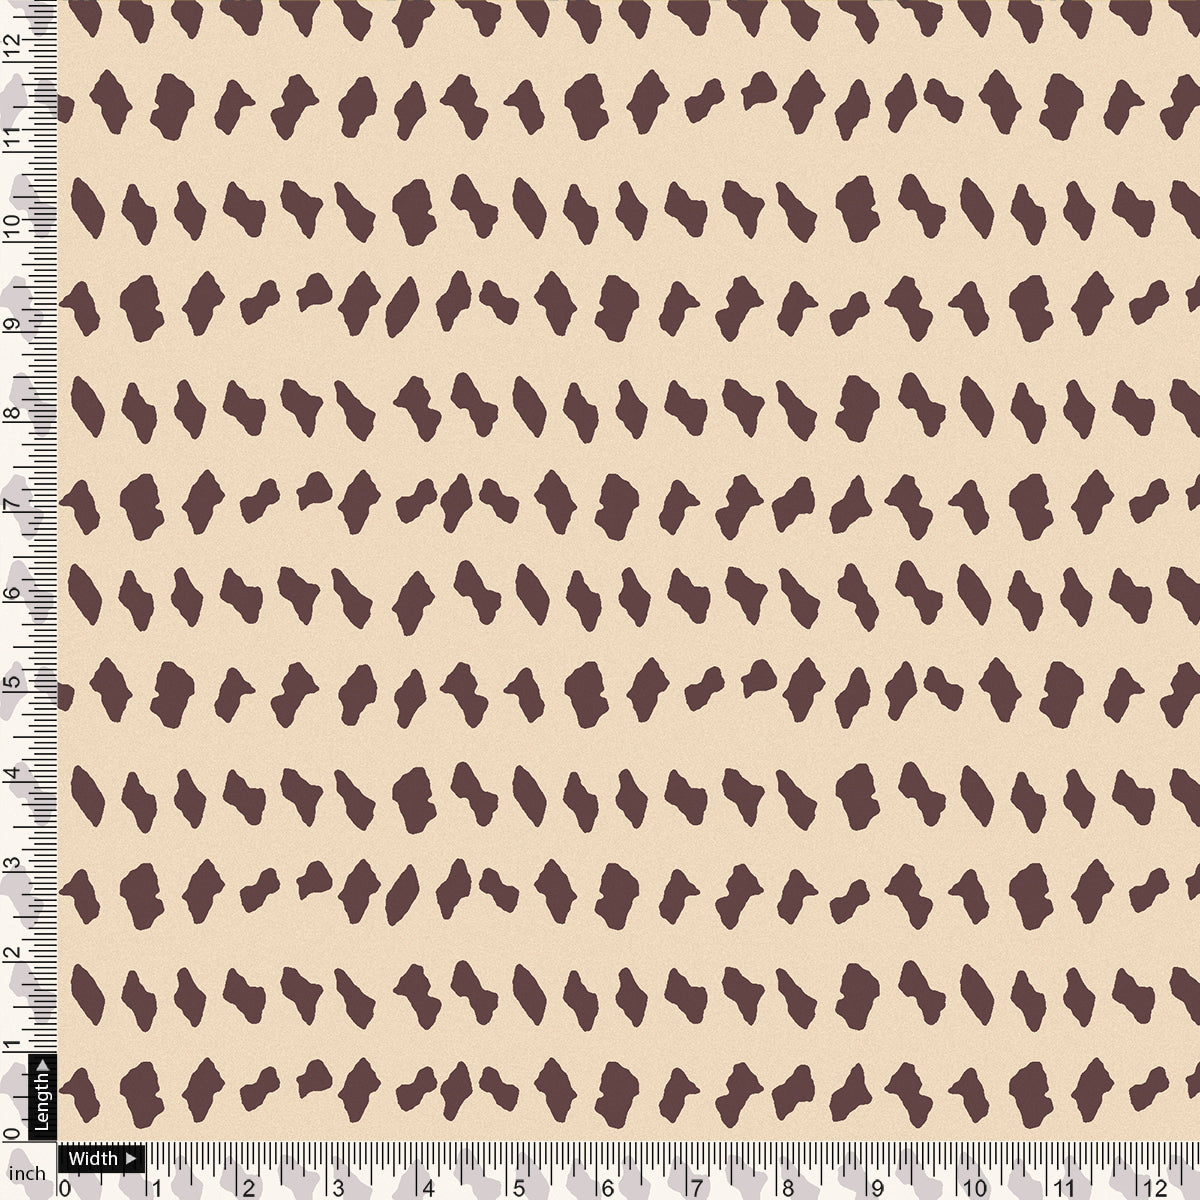 Brown Stones Digital Printed Fabric - Kora Silk